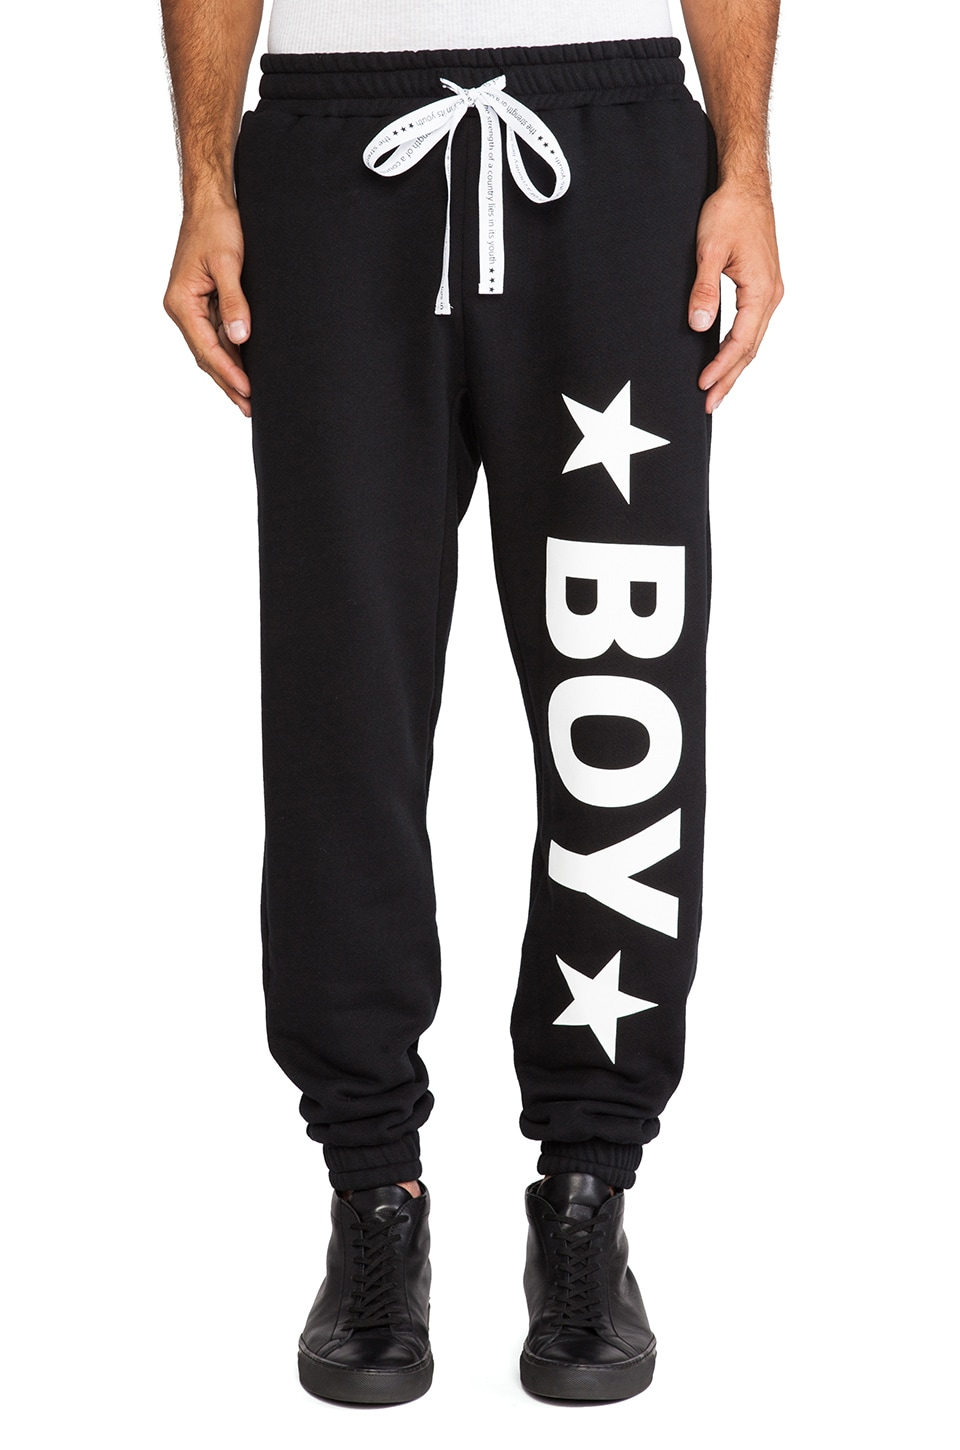 BOY London Standard Sweatpants in Black